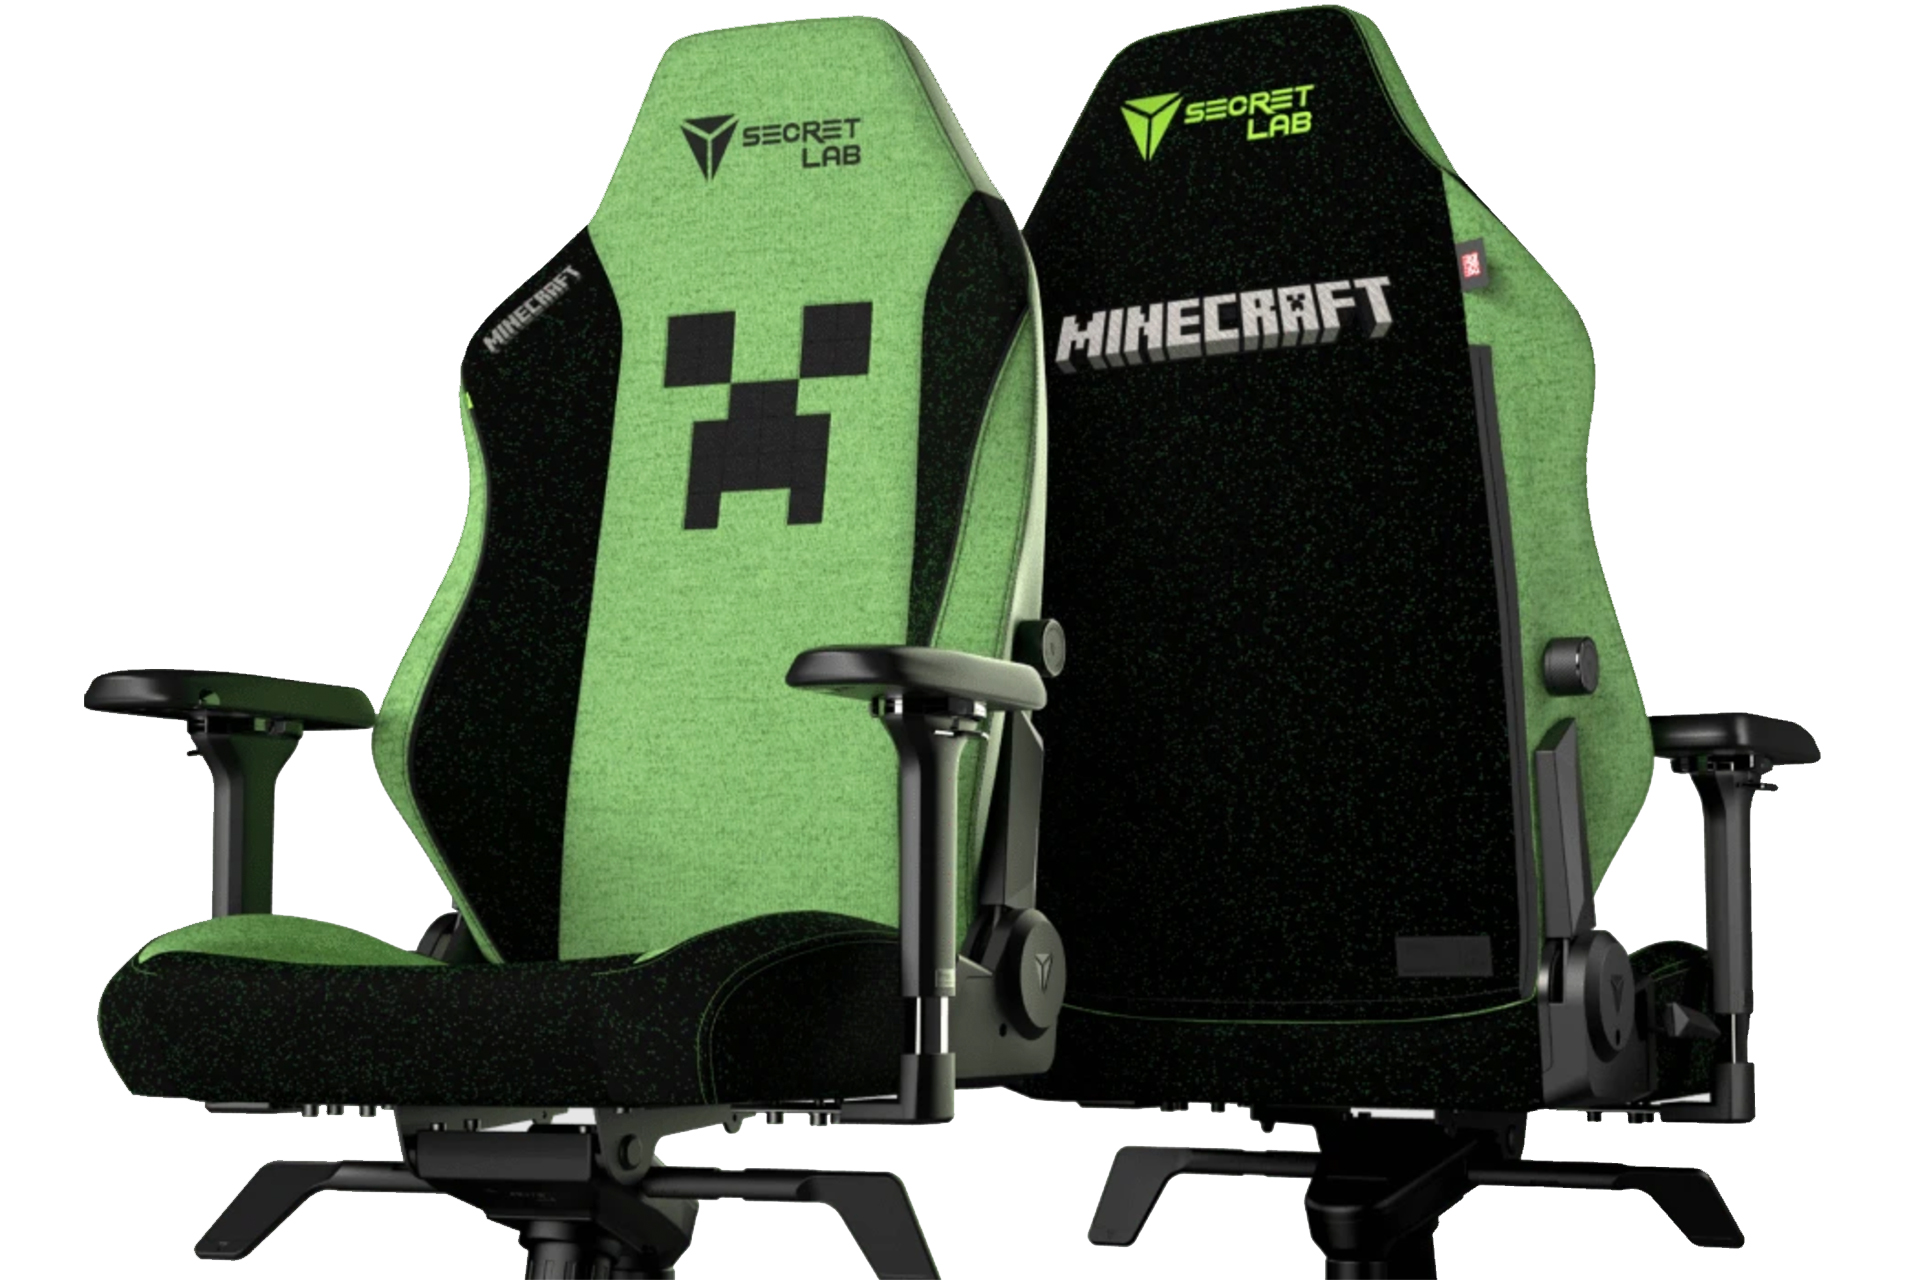 There's now an official 'Minecraft' gaming chair | Engadget